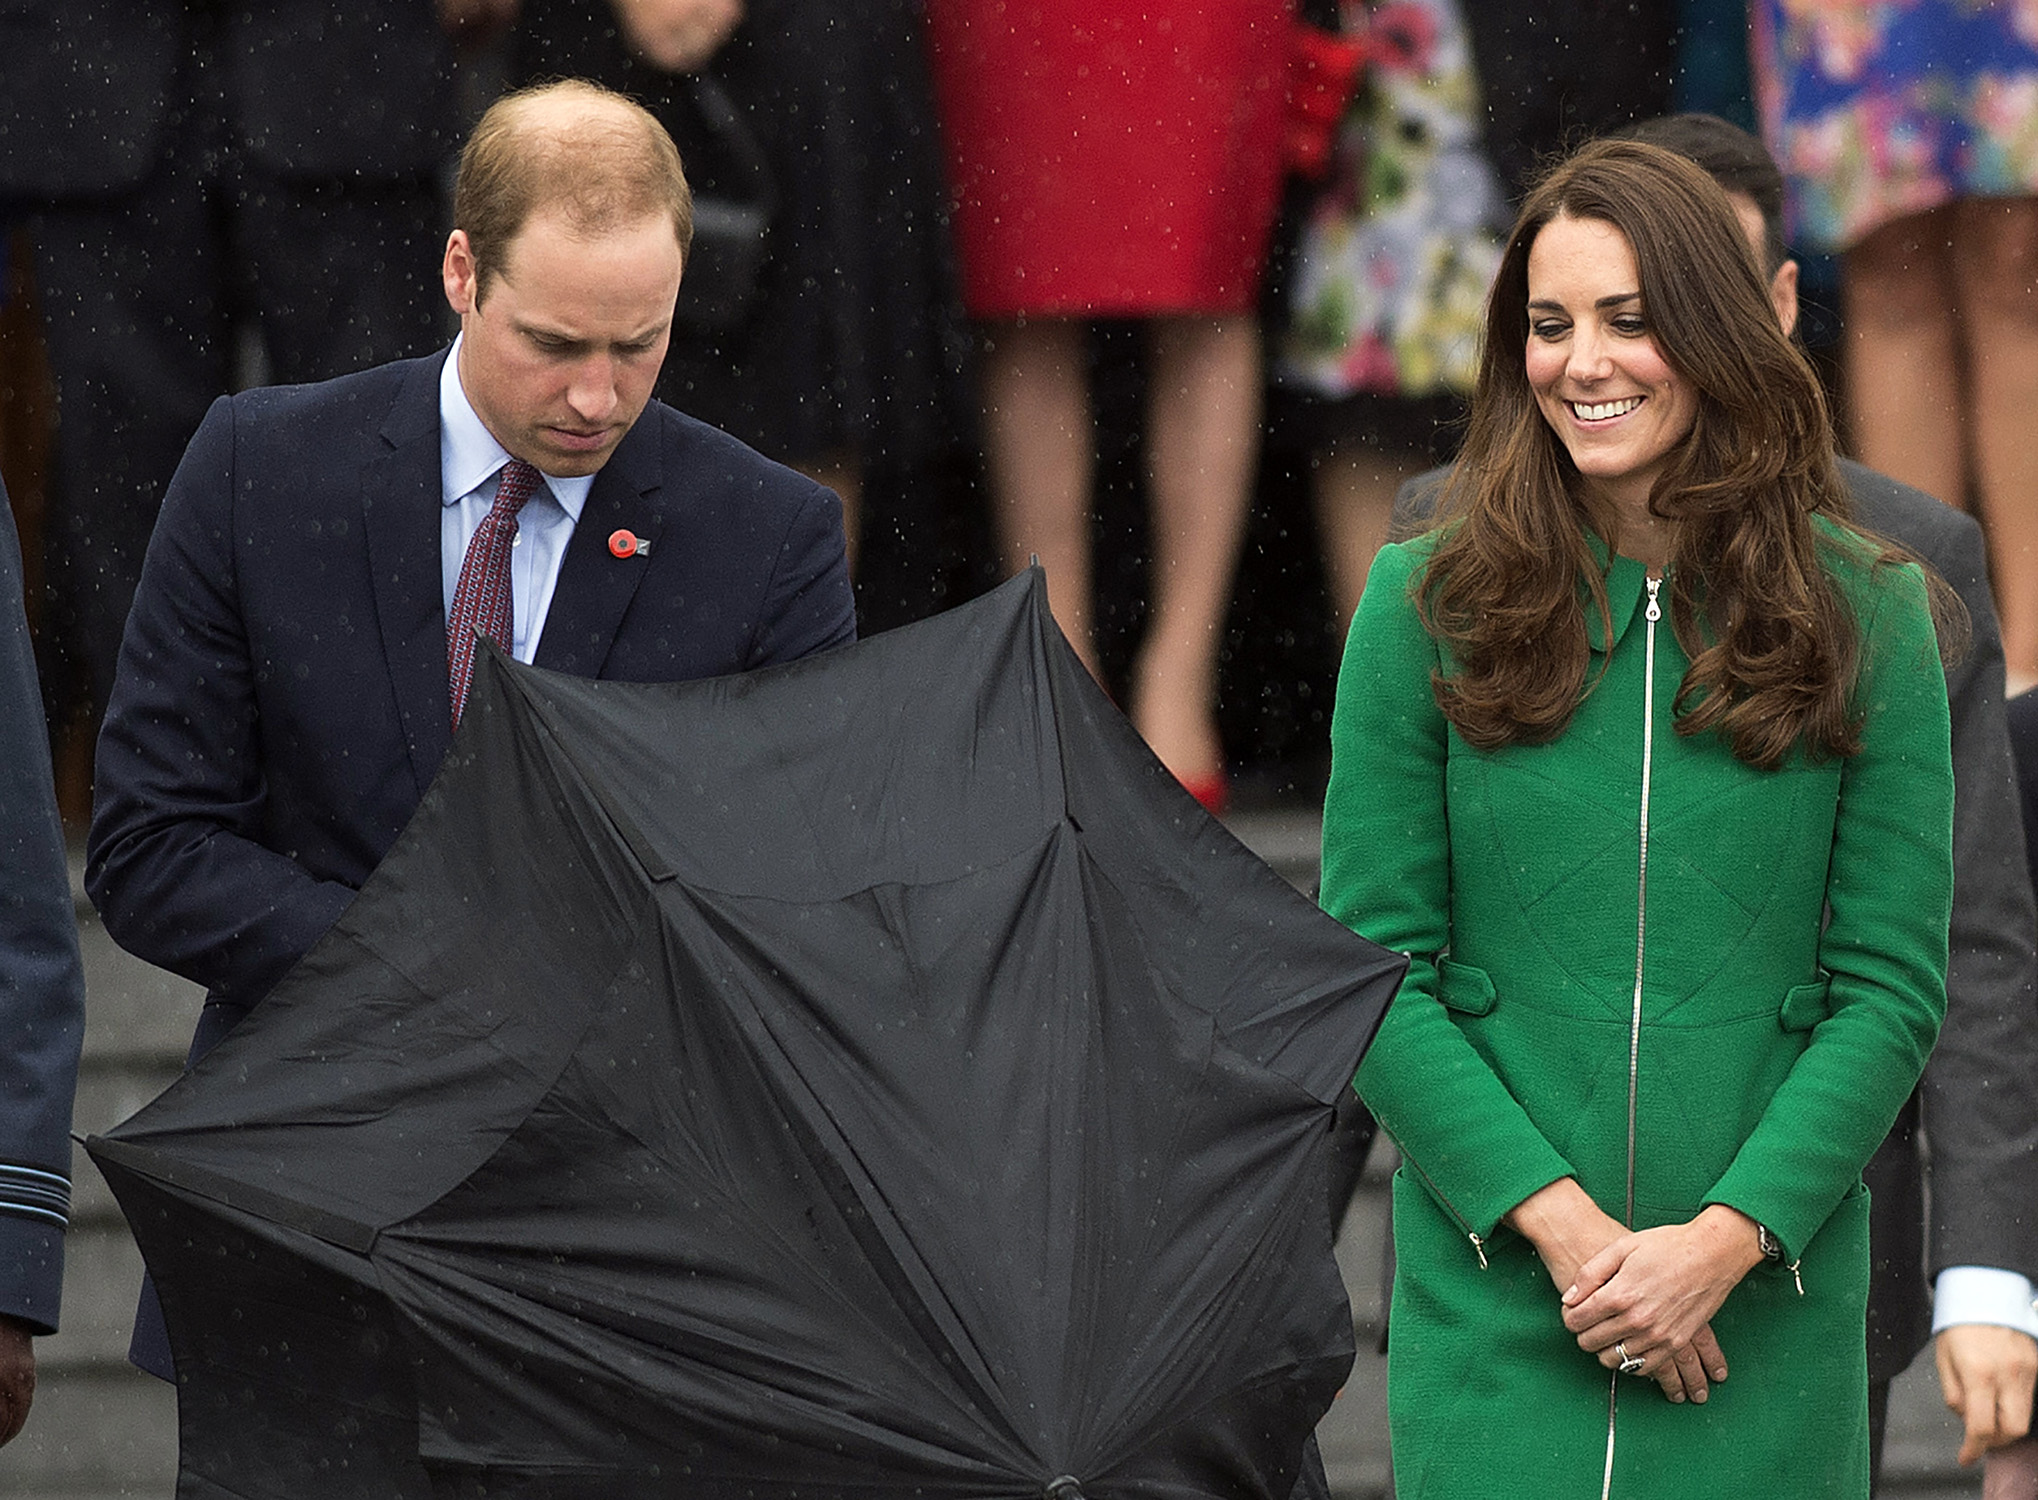 <strong>Gorgeous in Green</strong>Britain's Prince William opens an umbrella for himself and his wife Catherine, Duchess of Cambridge, during a walkabout in Cambridge, New Zealand, April 12, 2014.